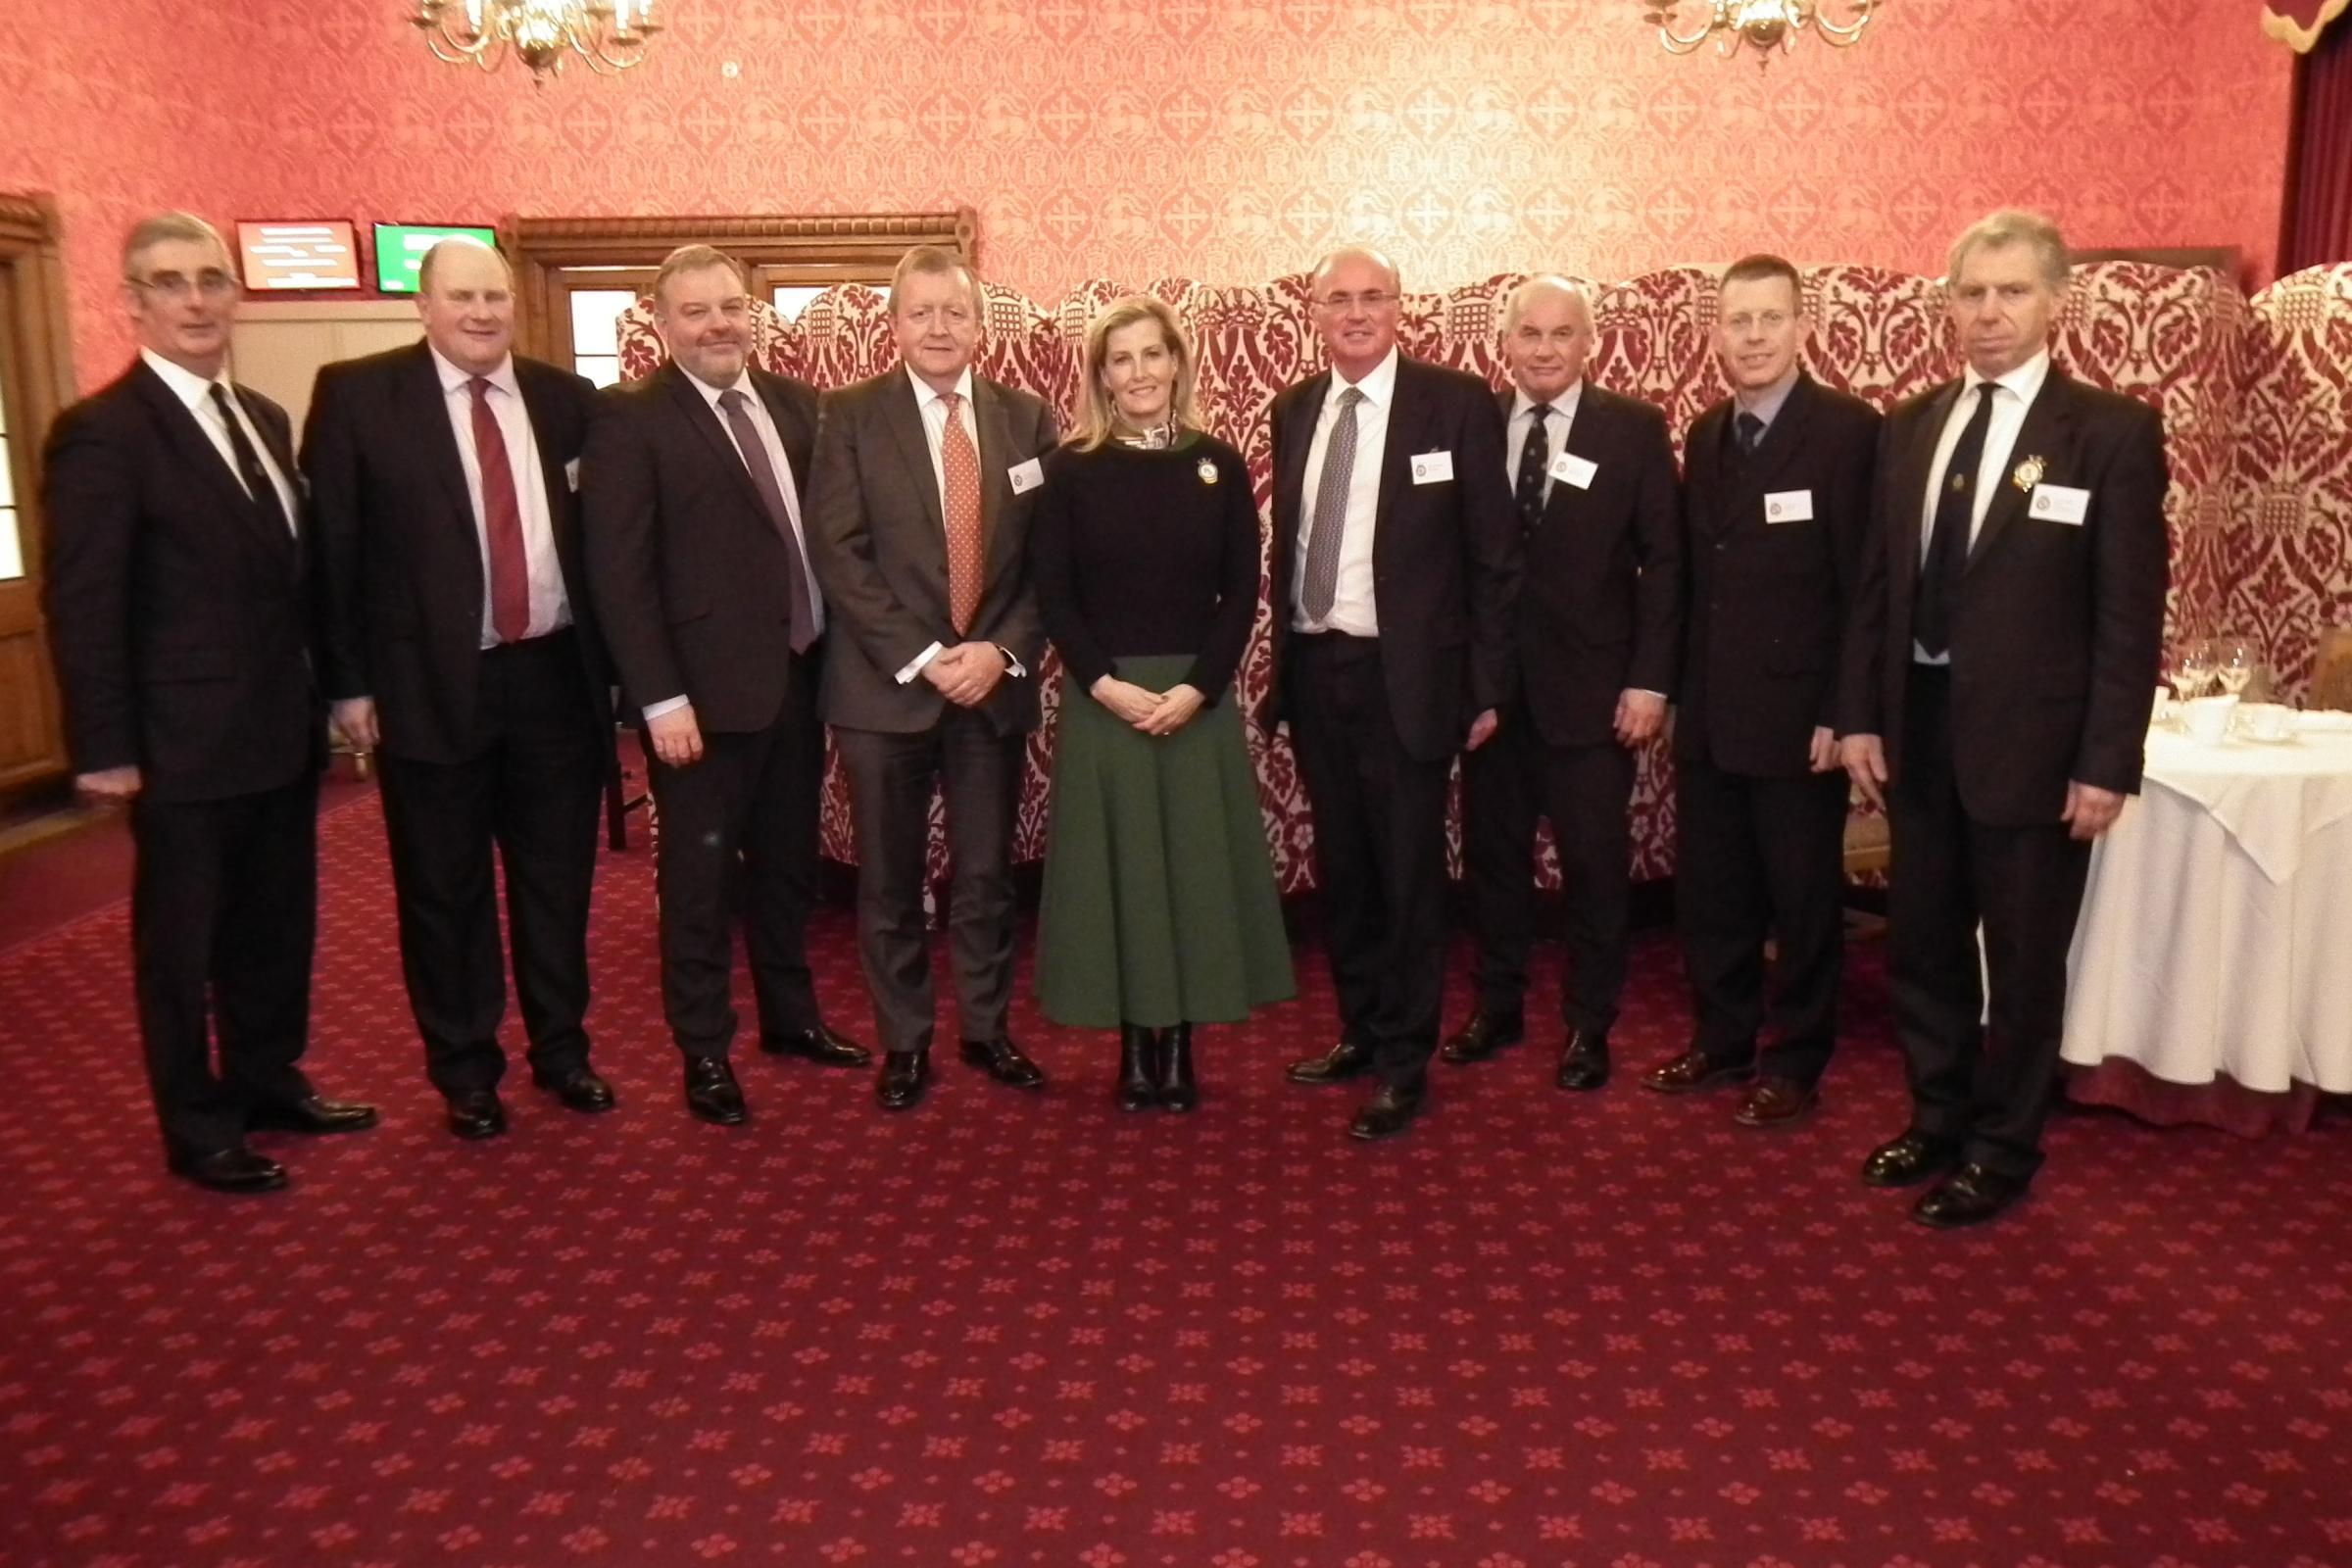 Smithfield Forum pictured with HRH Countess of Wessex centre, with L-R John Dracup, Andrew Laughton, Prys Morgan, Tom Kirwan, Robbie Galloway, David Gunner, Mark Allan and William Bedell